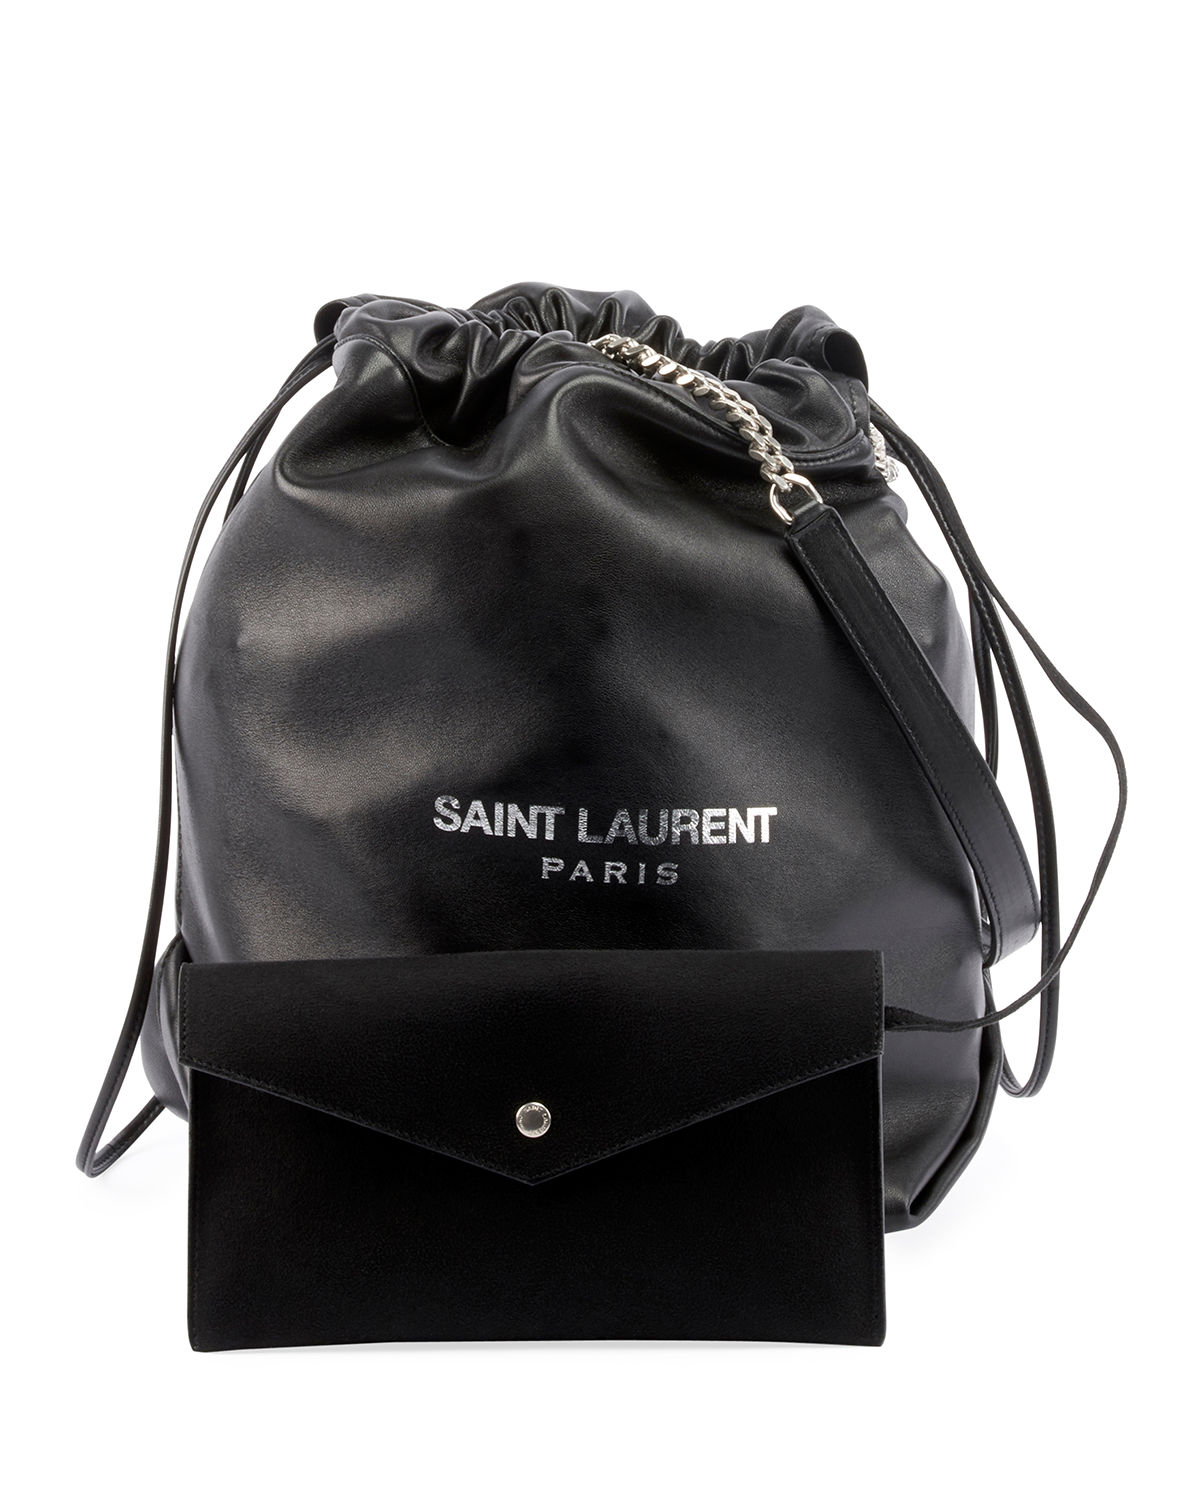 Saint Laurent Teddy Drawstring Bucket Bag  eac65809793d9